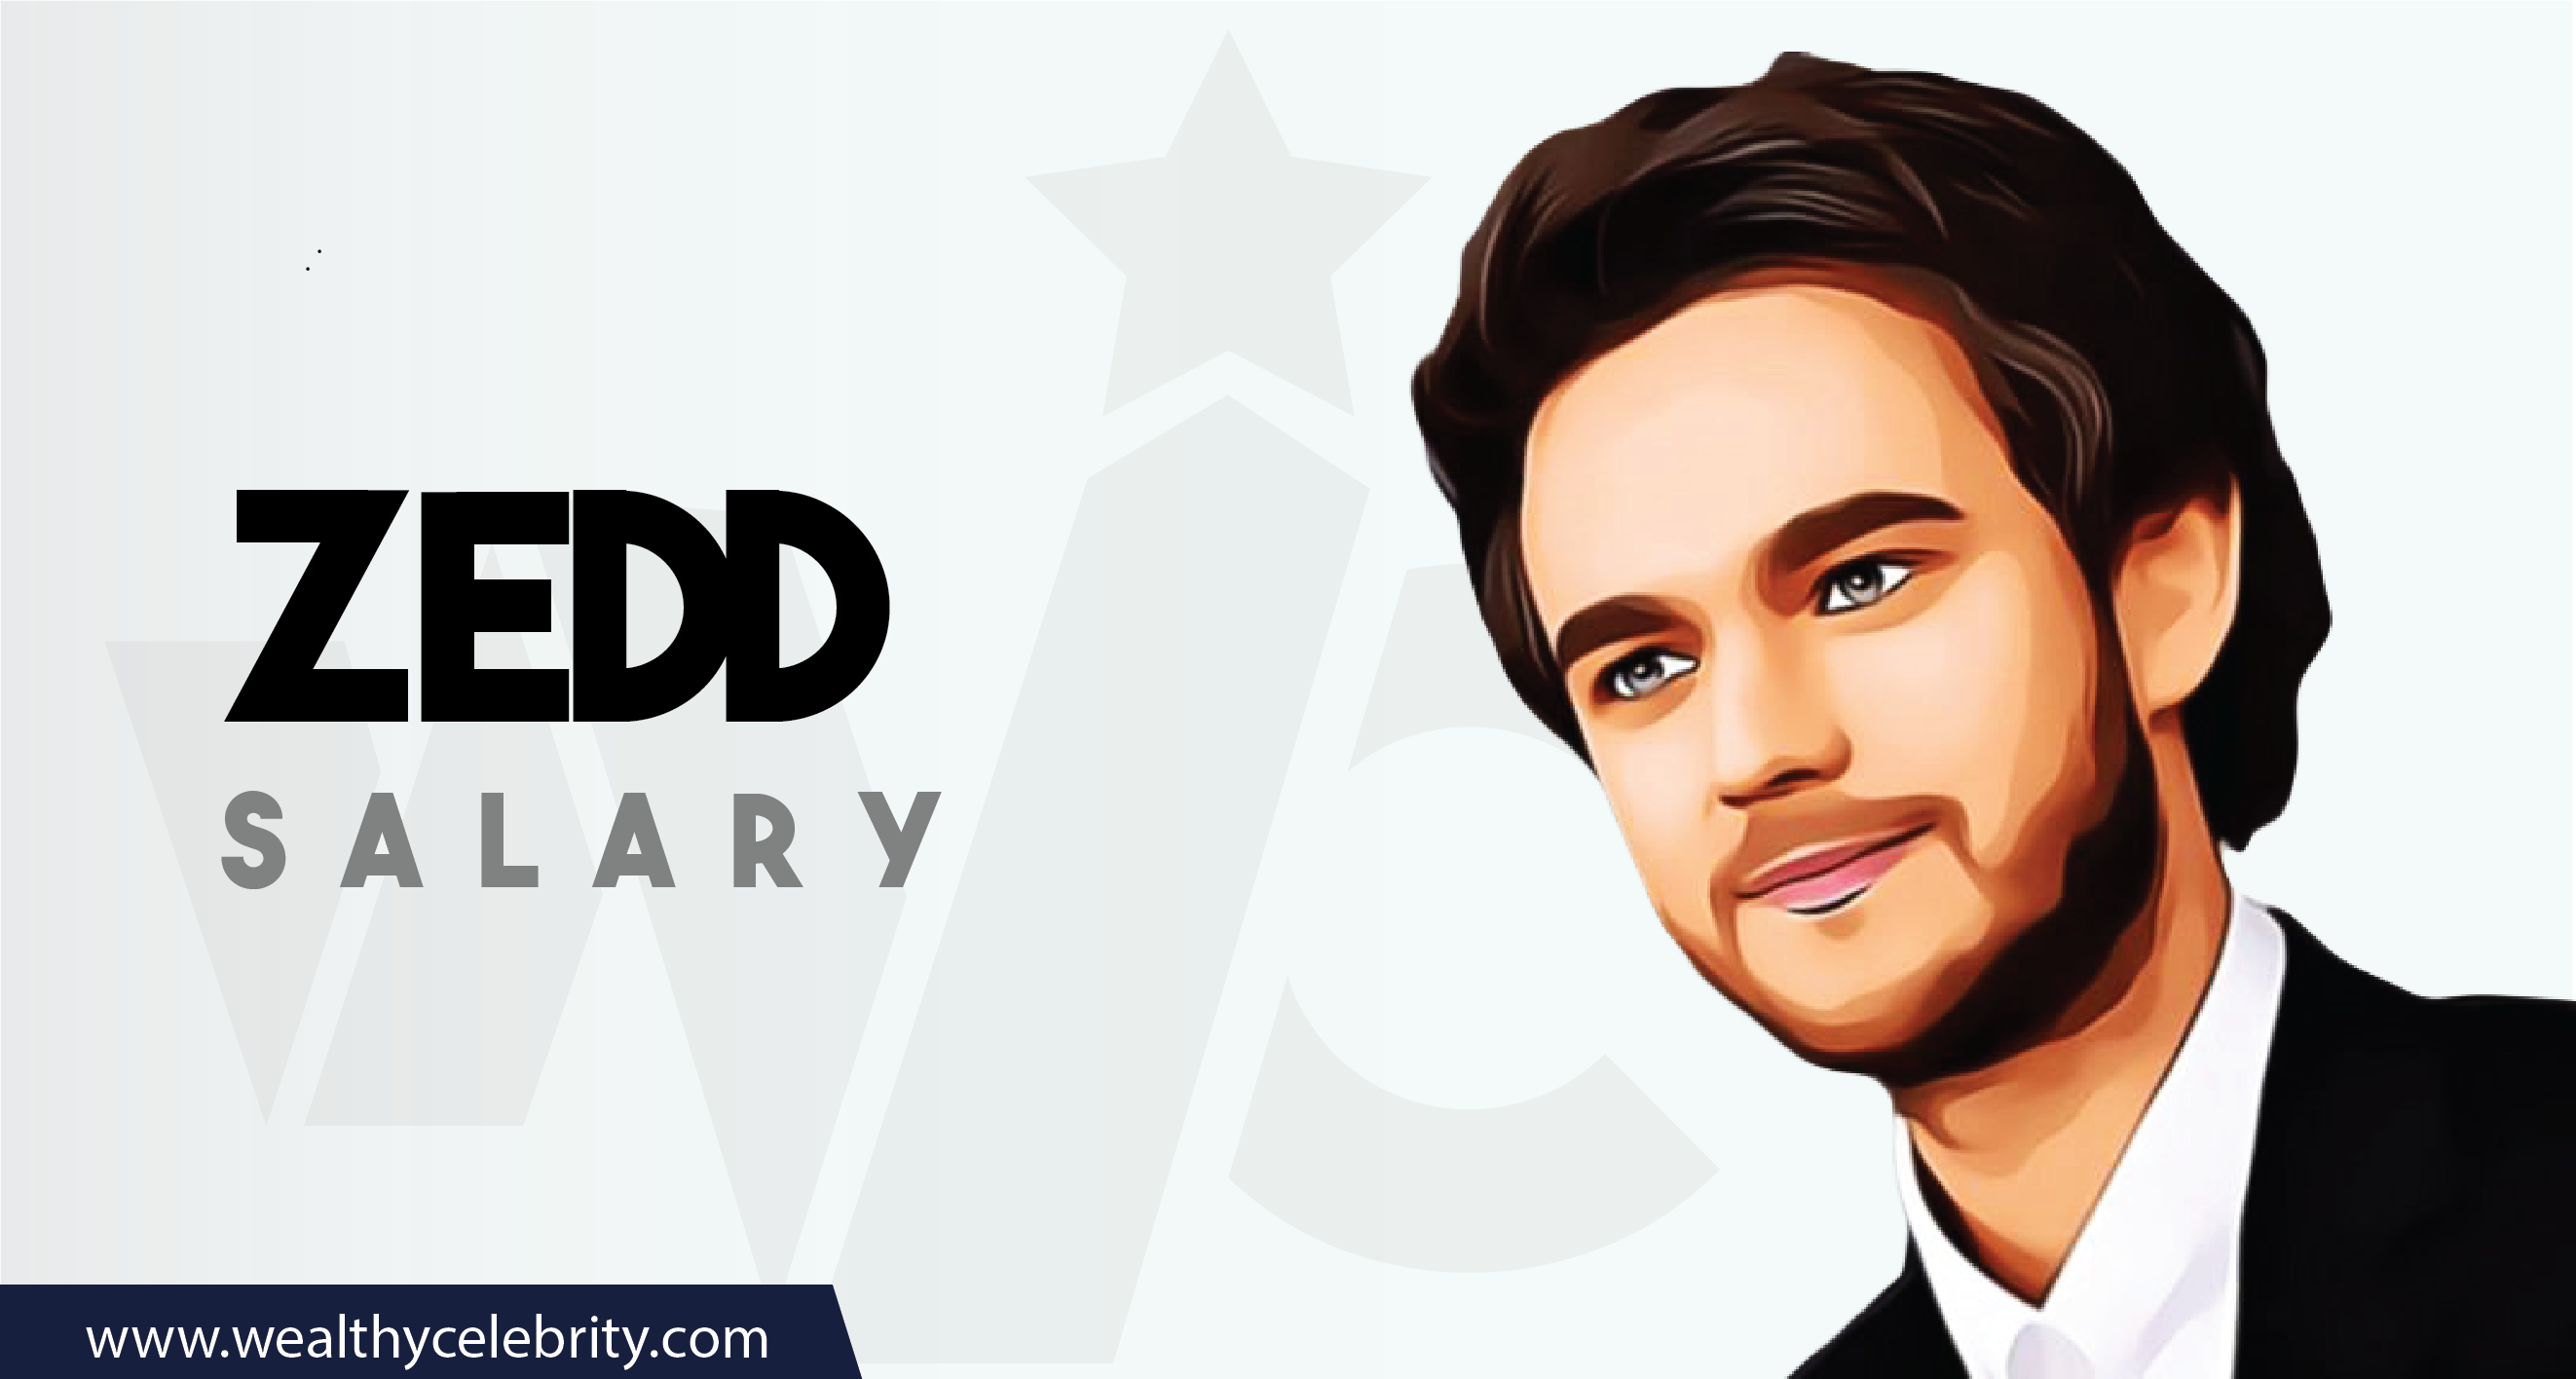 Zedd DJ - Current Salary Net Worth